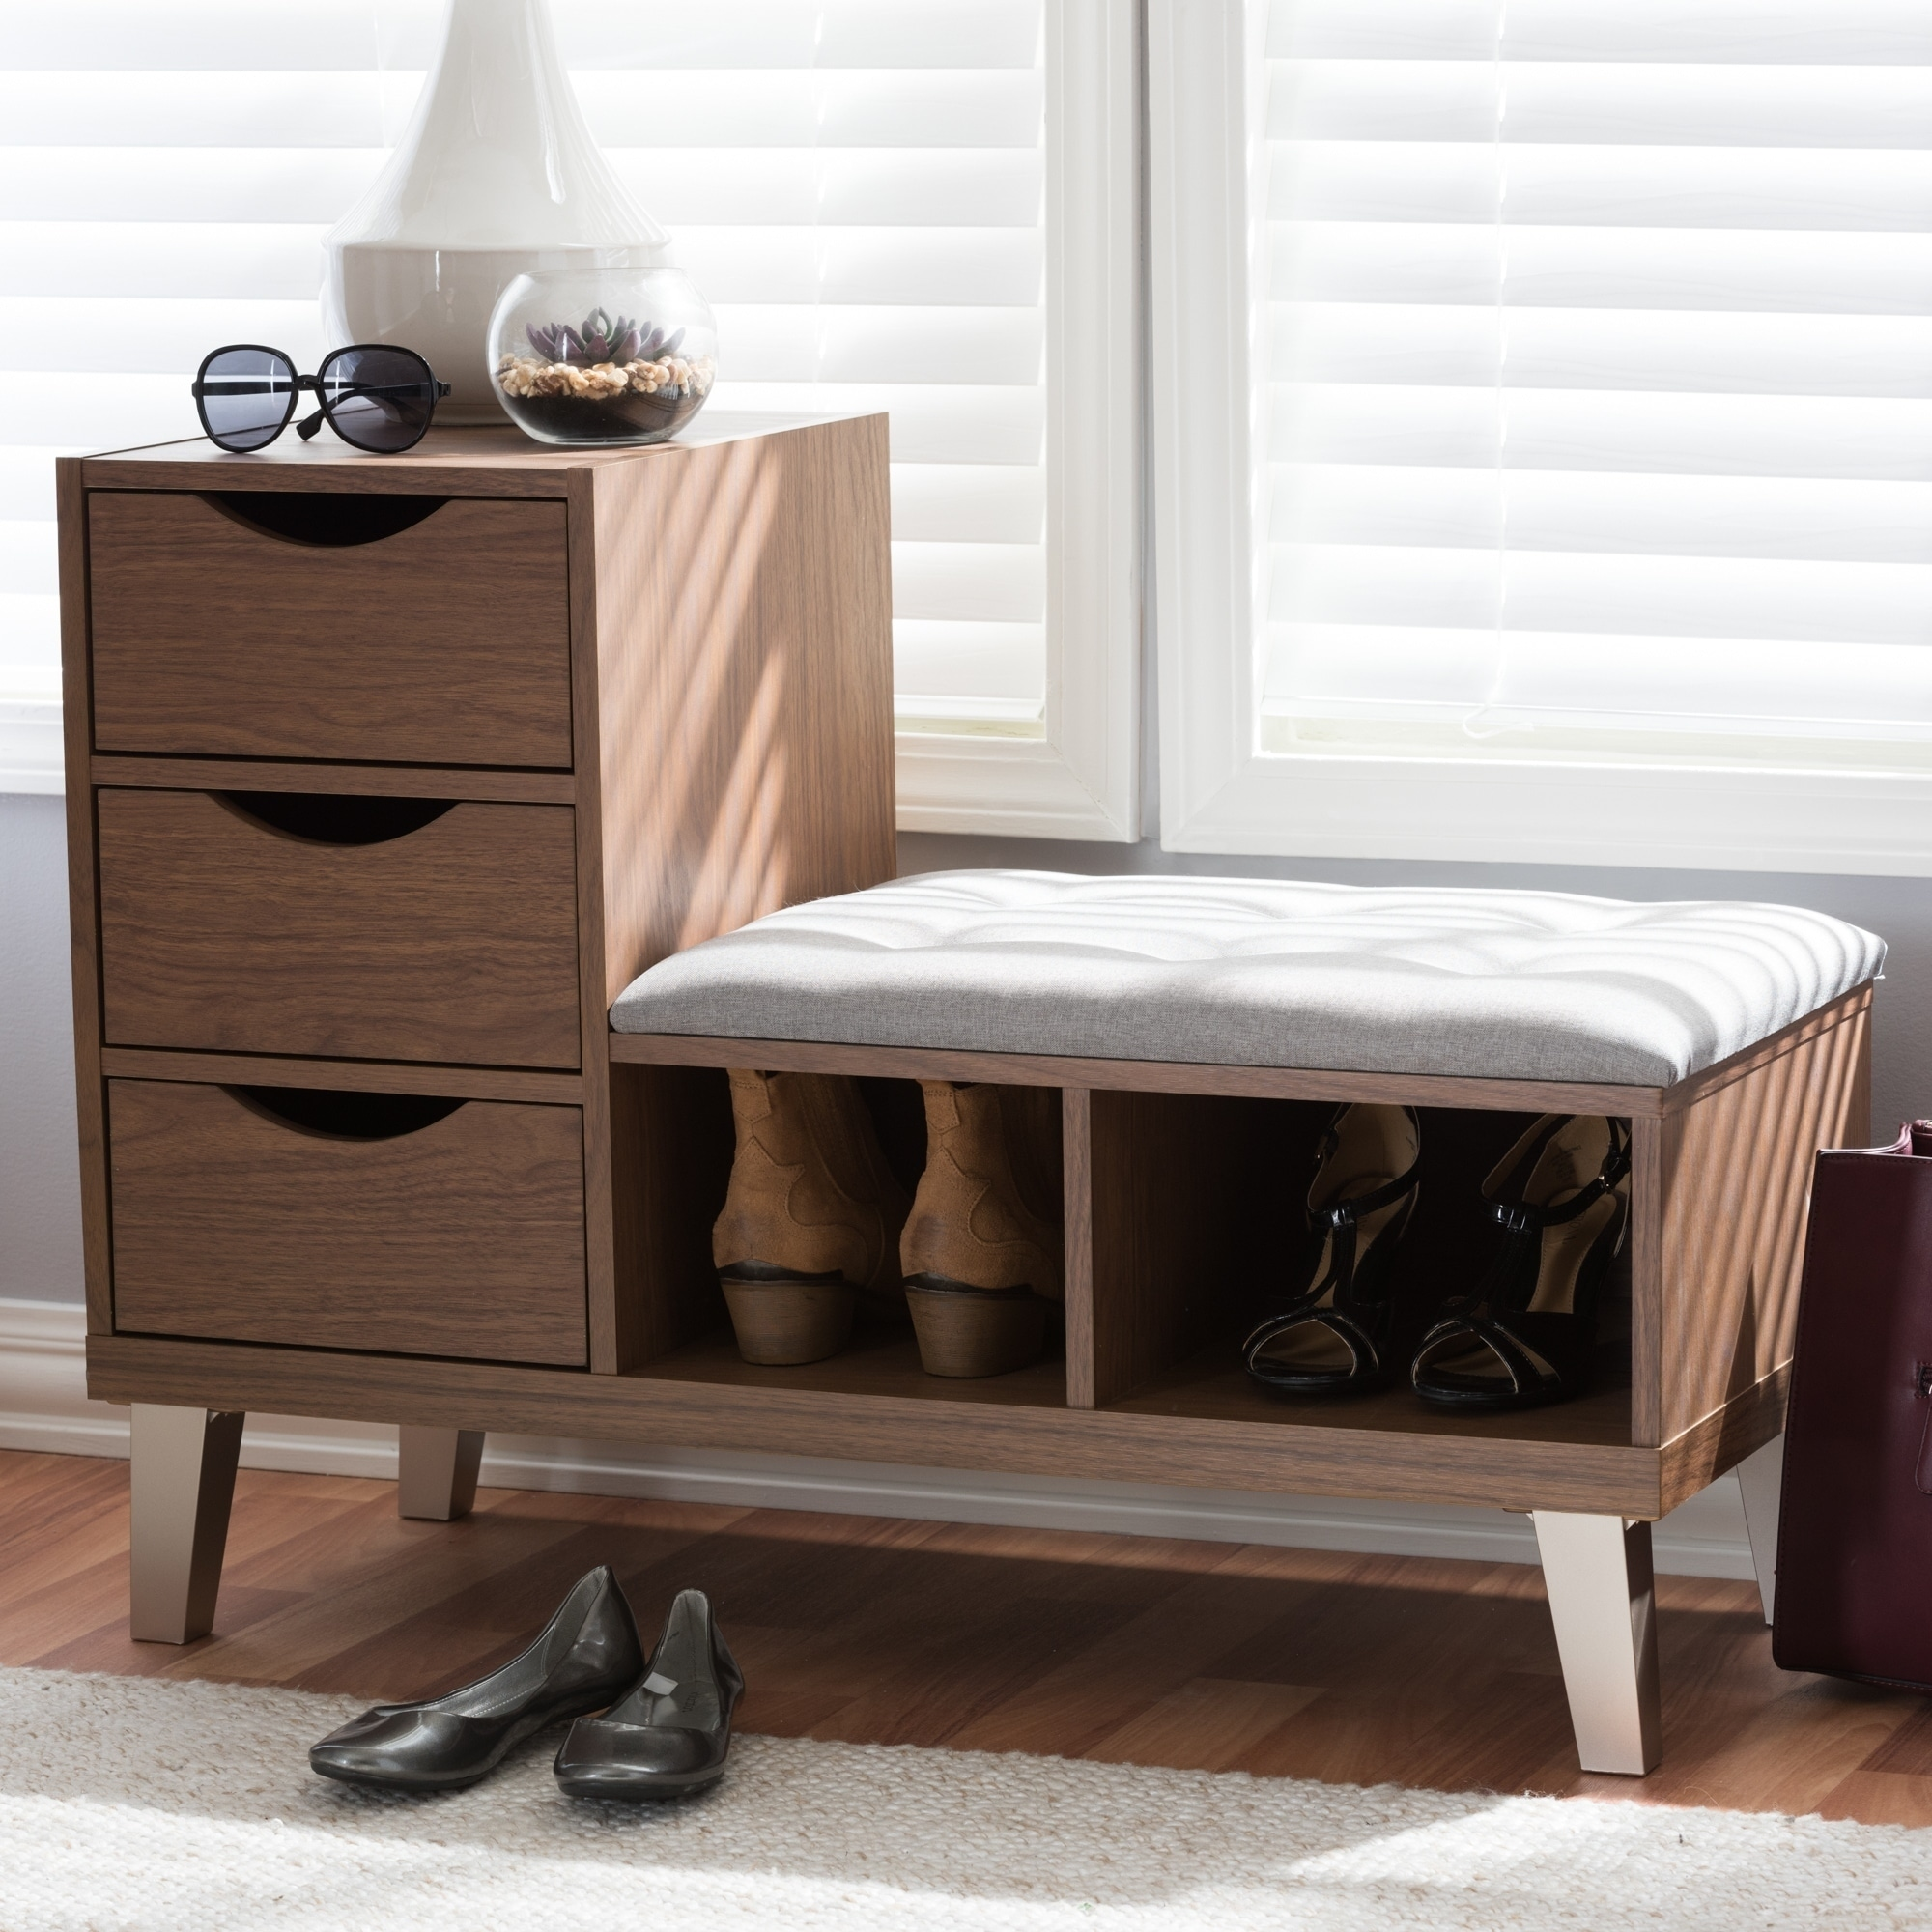 Wondrous Contemporary Shoe Storage Bench By Baxton Studio Ocoug Best Dining Table And Chair Ideas Images Ocougorg